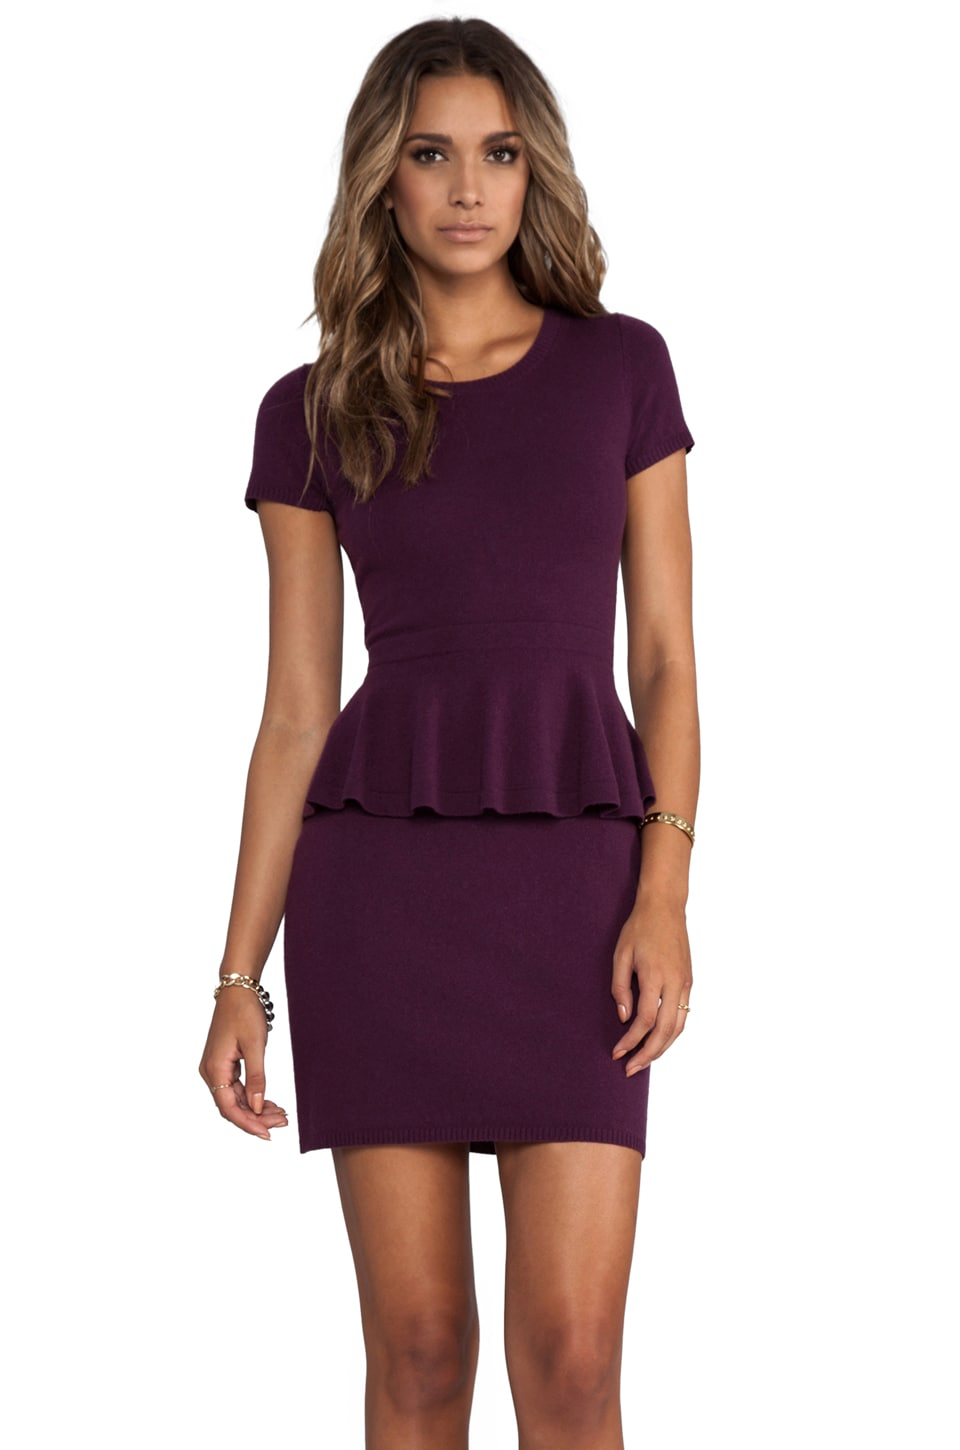 Autumn Cashmere Peplum Zip Back Dress in Port